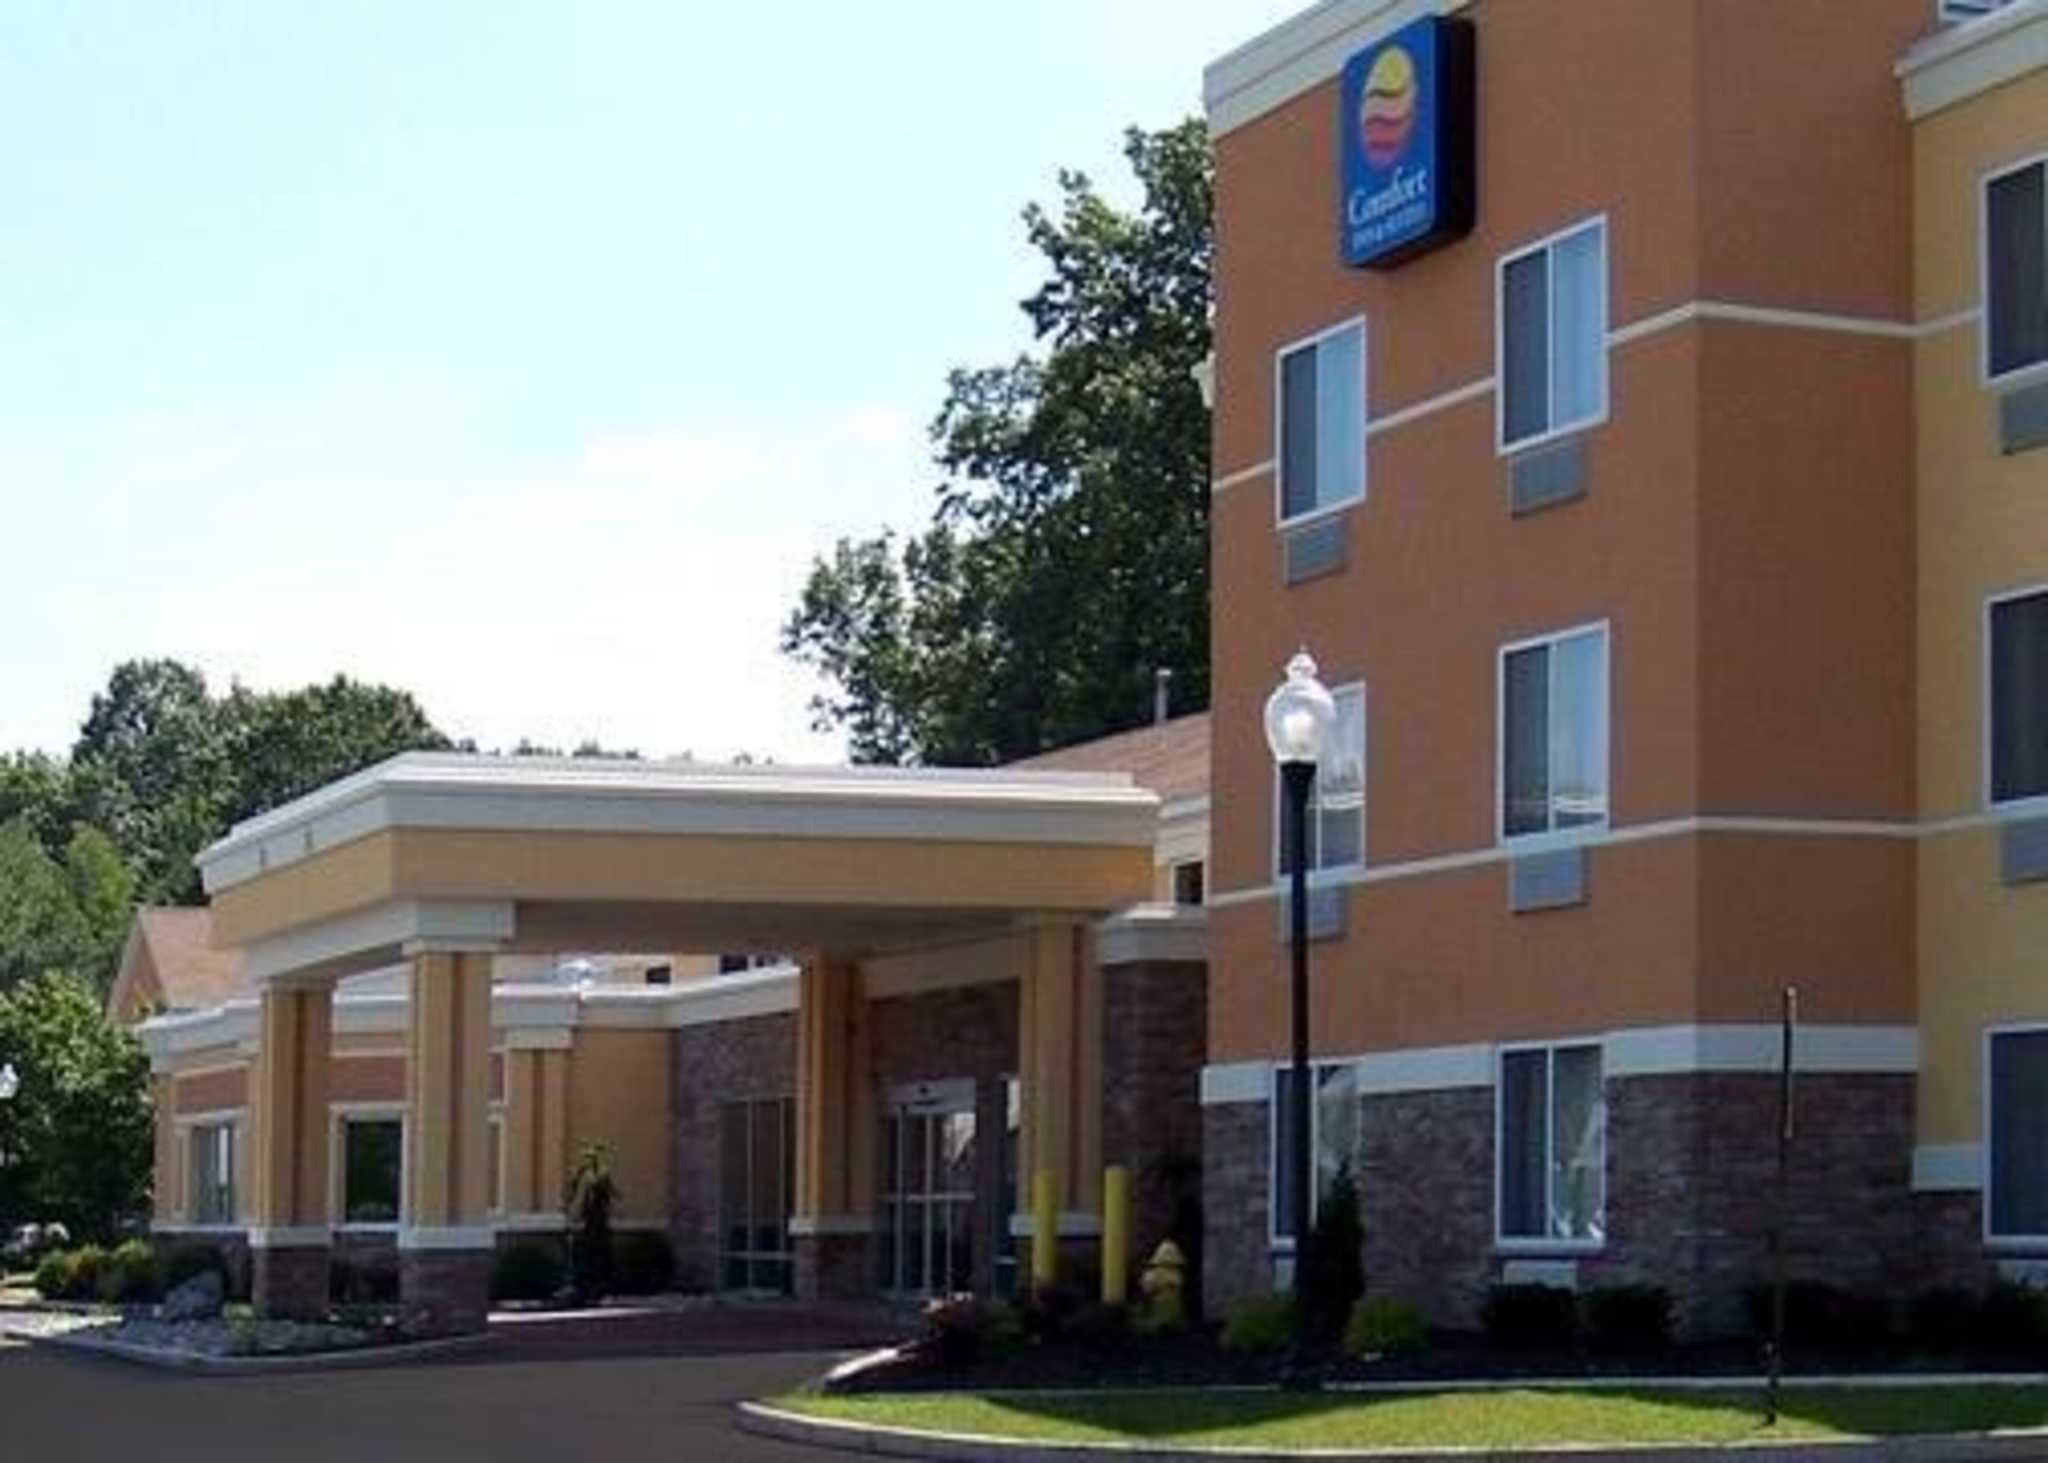 comfort inn suites coupons saratoga springs ny near me